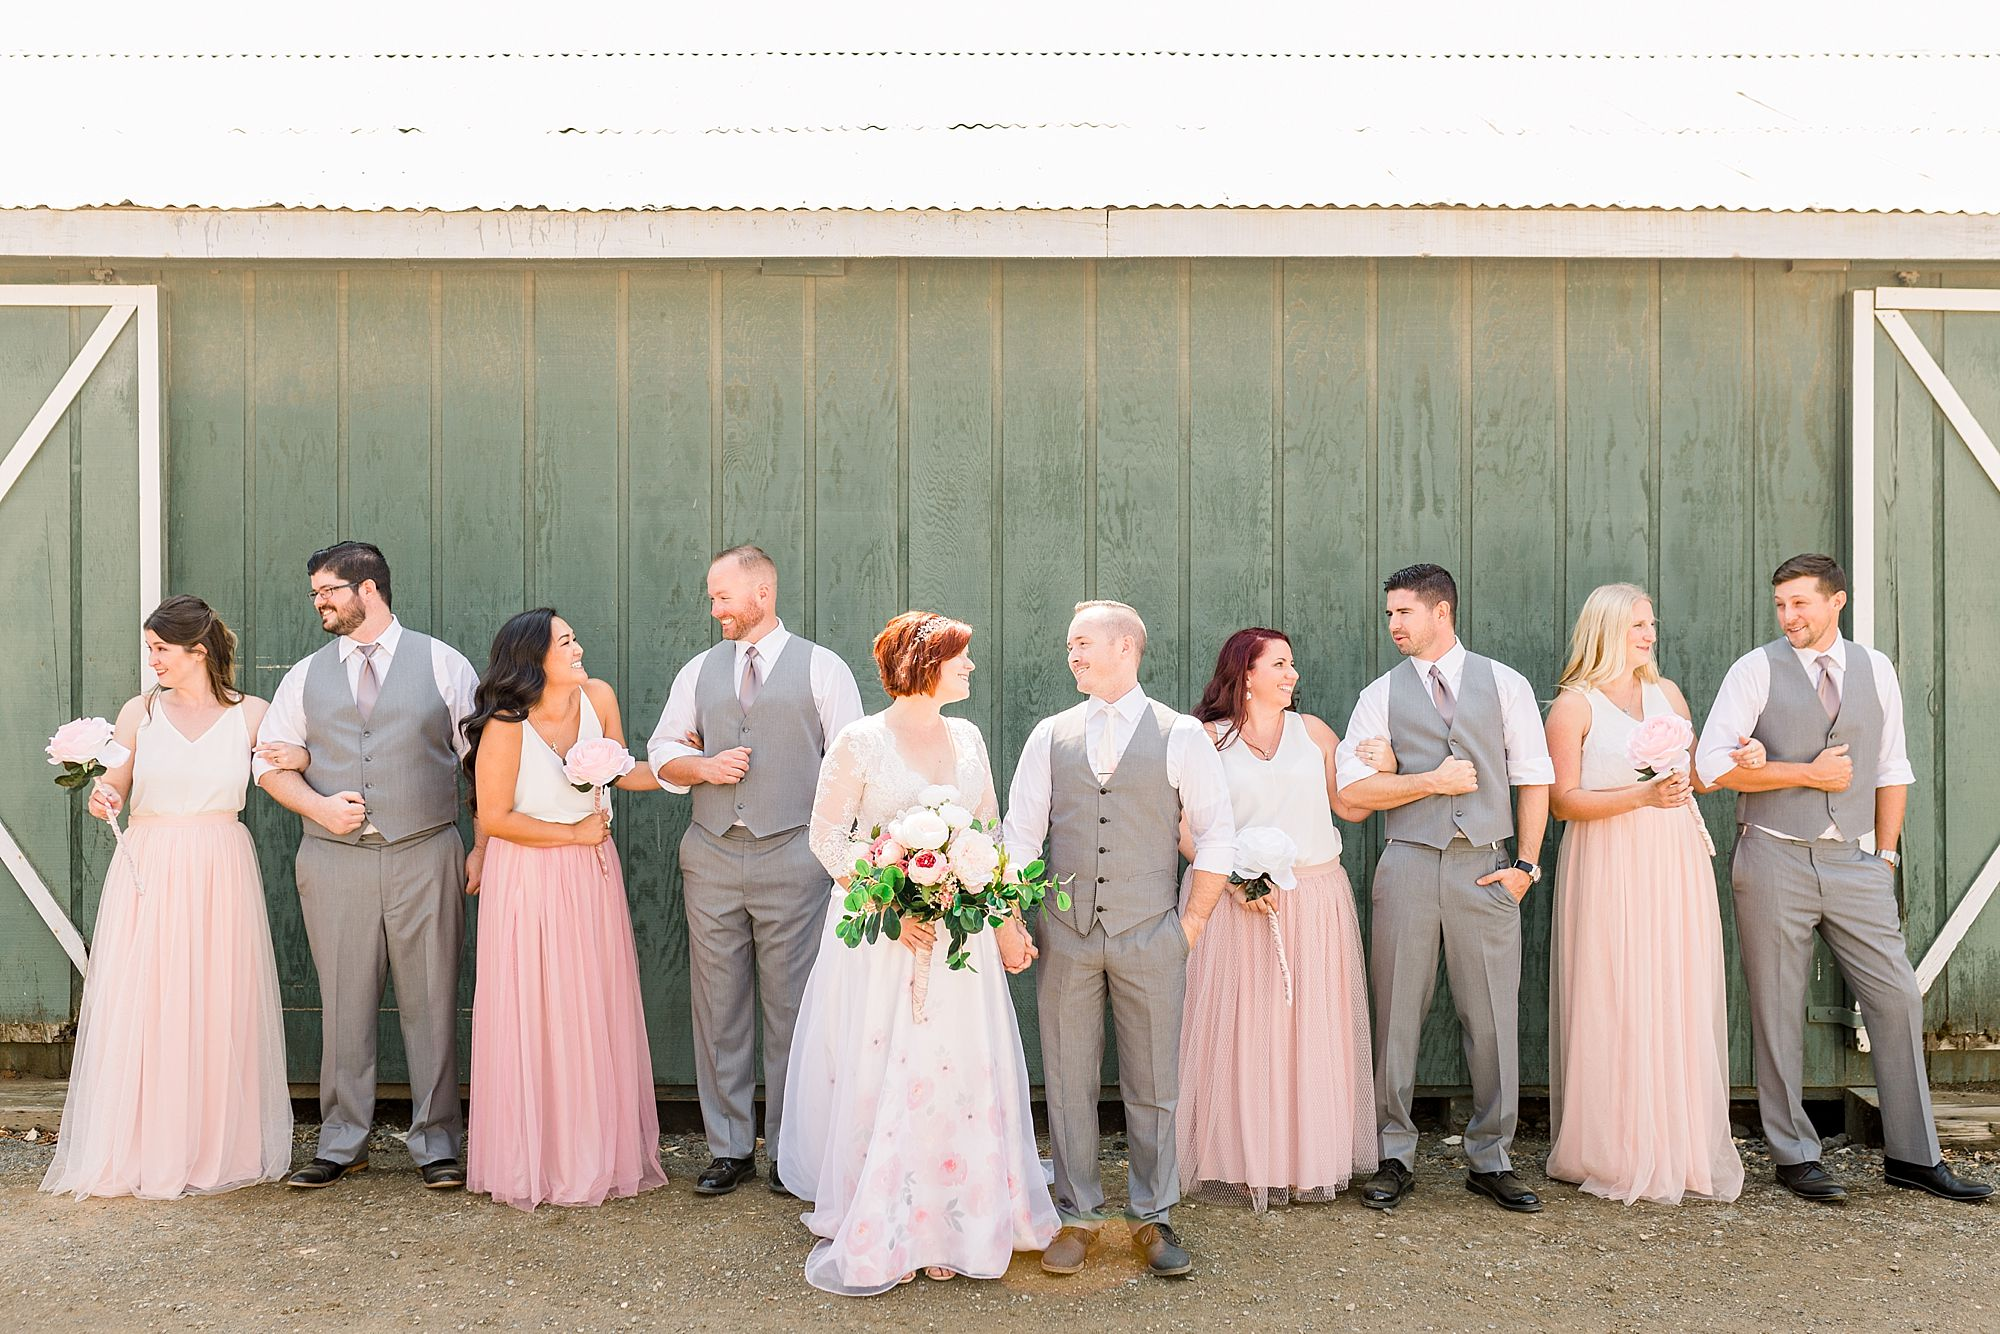 Bishops Pumpkin Farm Wedding - Annie and Logan - Ashley Baumgartner - Wheatland Wedding Photographer_0019.jpg